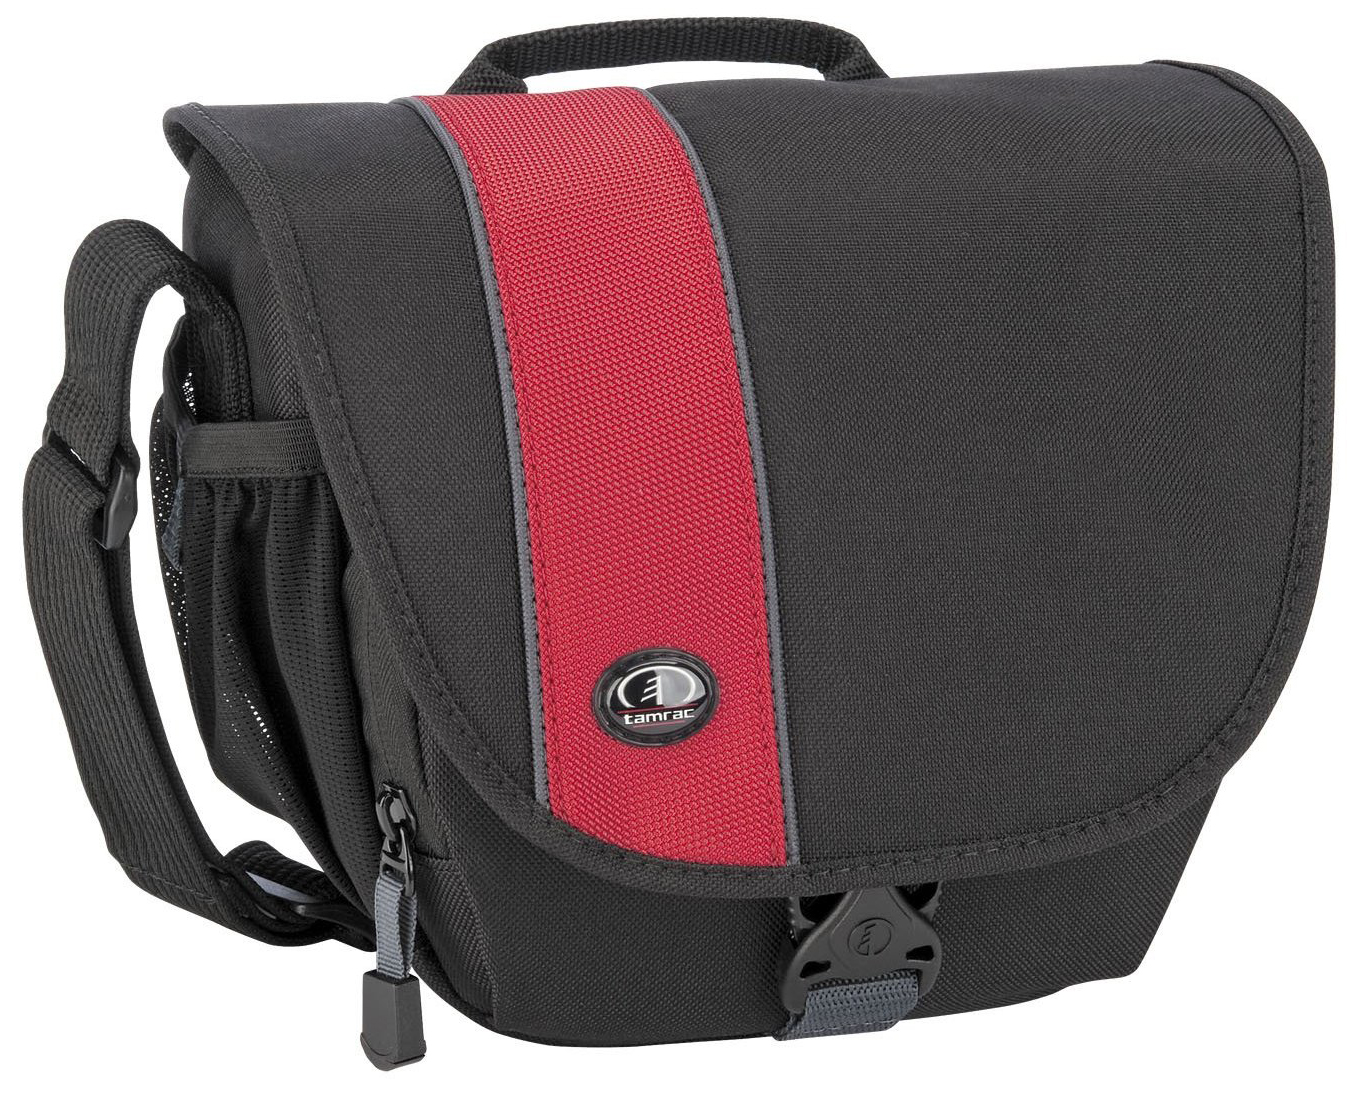 3442 RALLY 2 Camera Bag (Black/Red)